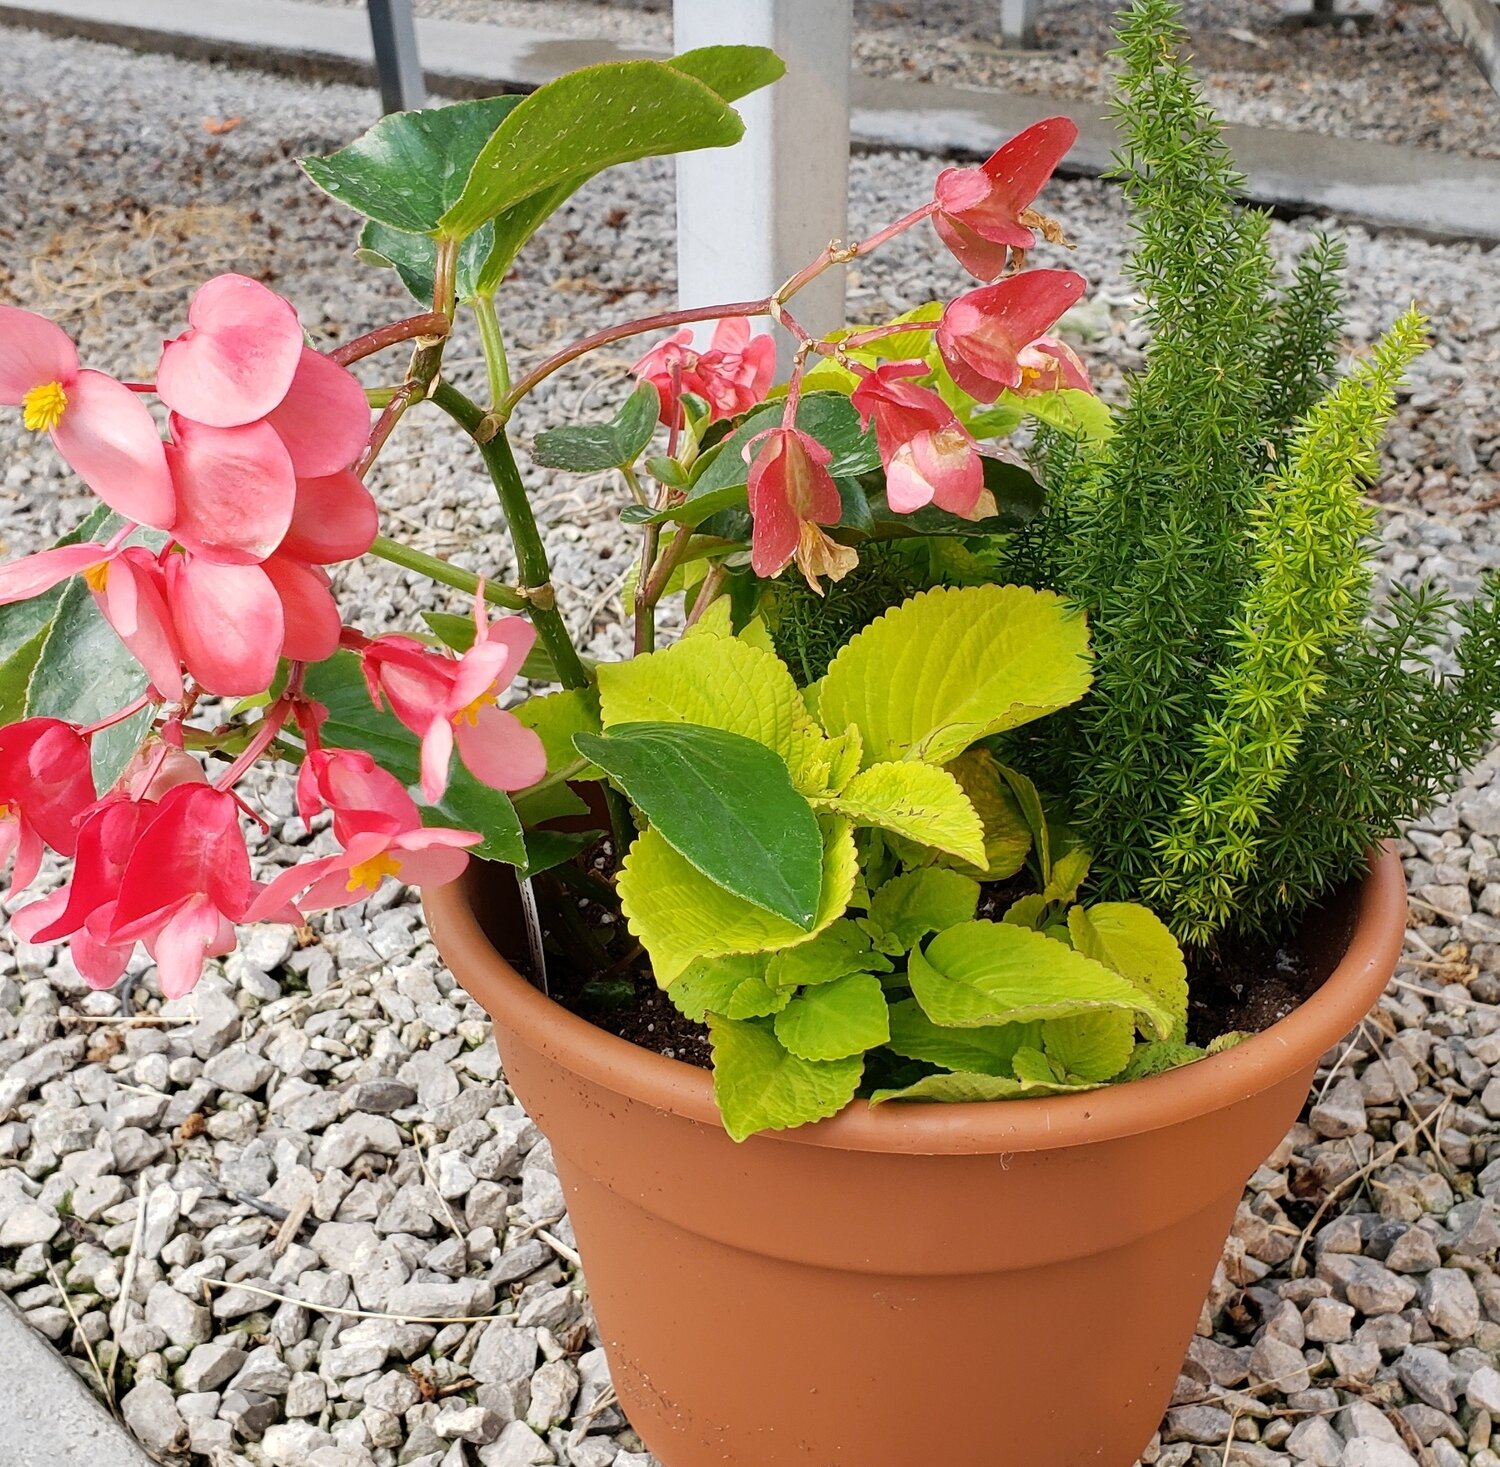 Patio Pot, Shade: Dragon Wing Pink Begonia, Lime Coleus, Foxtail Fern